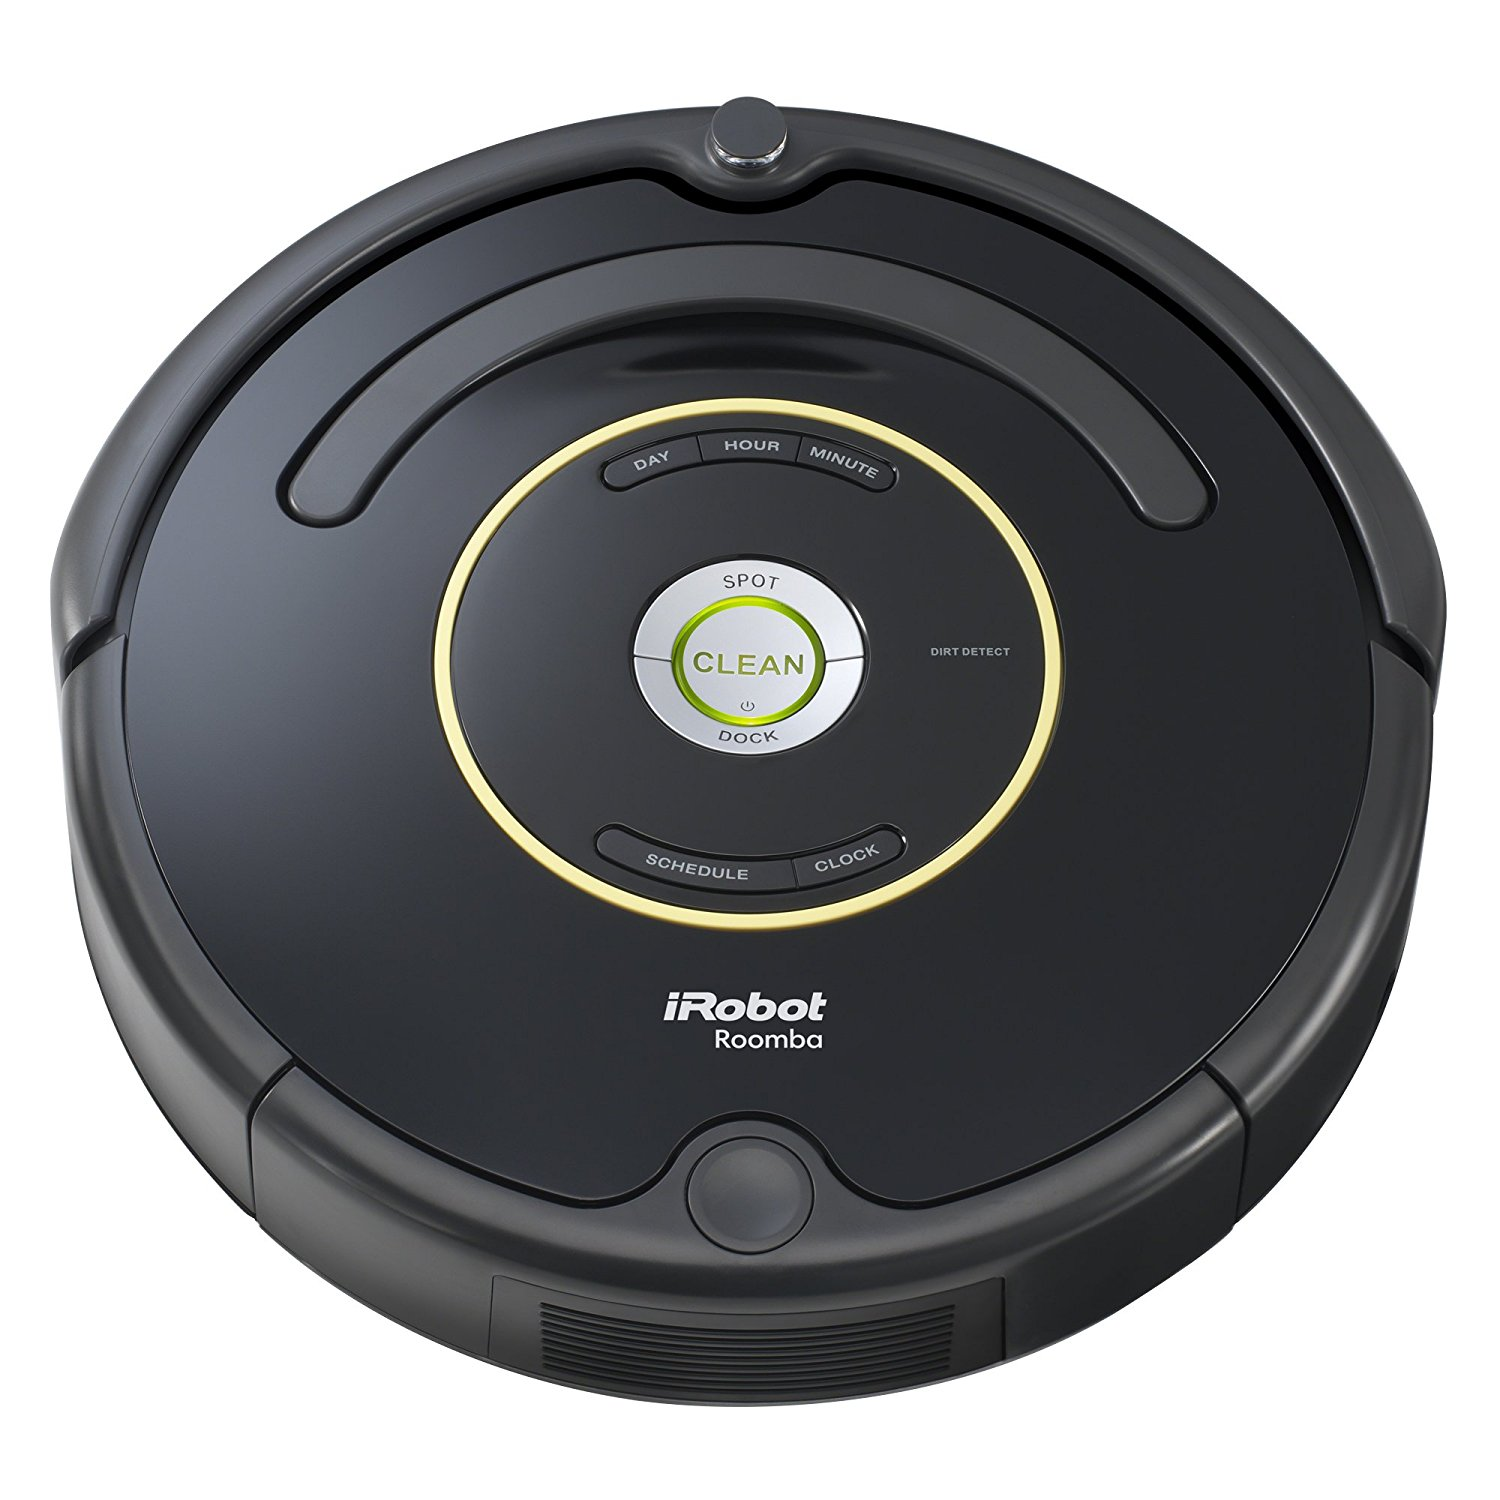 Robot Vacuum Cleaner Aspirador Carpet Sweeper Cyclone Dust Collector Roomba Mop